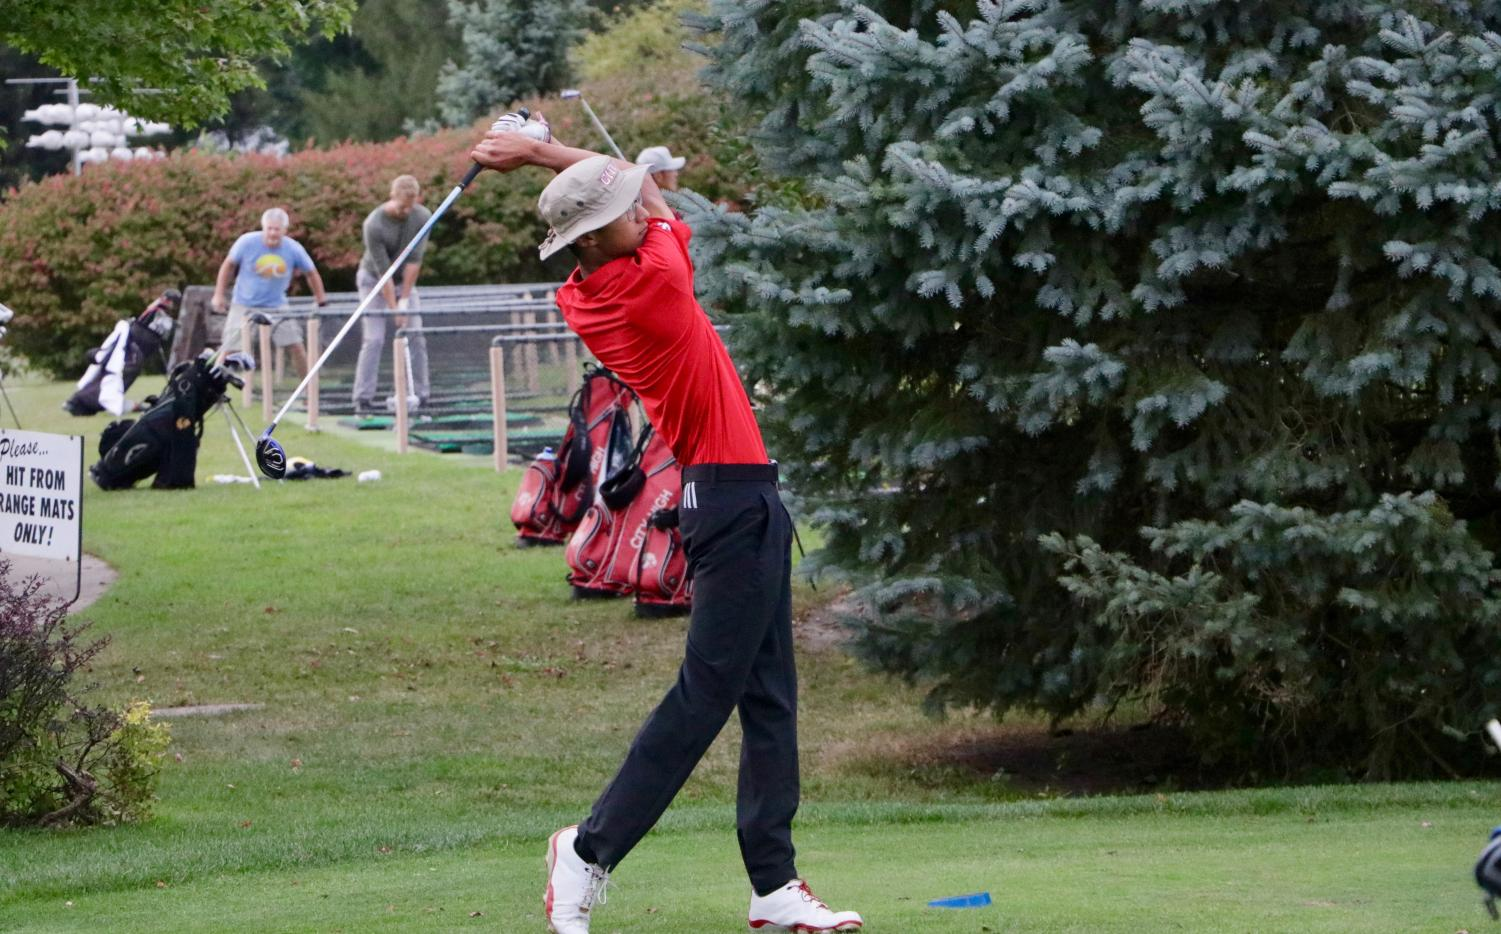 Winston Lui '18 takes a swing during the Little Hawks' meet at the Pleasant Valley golf course.